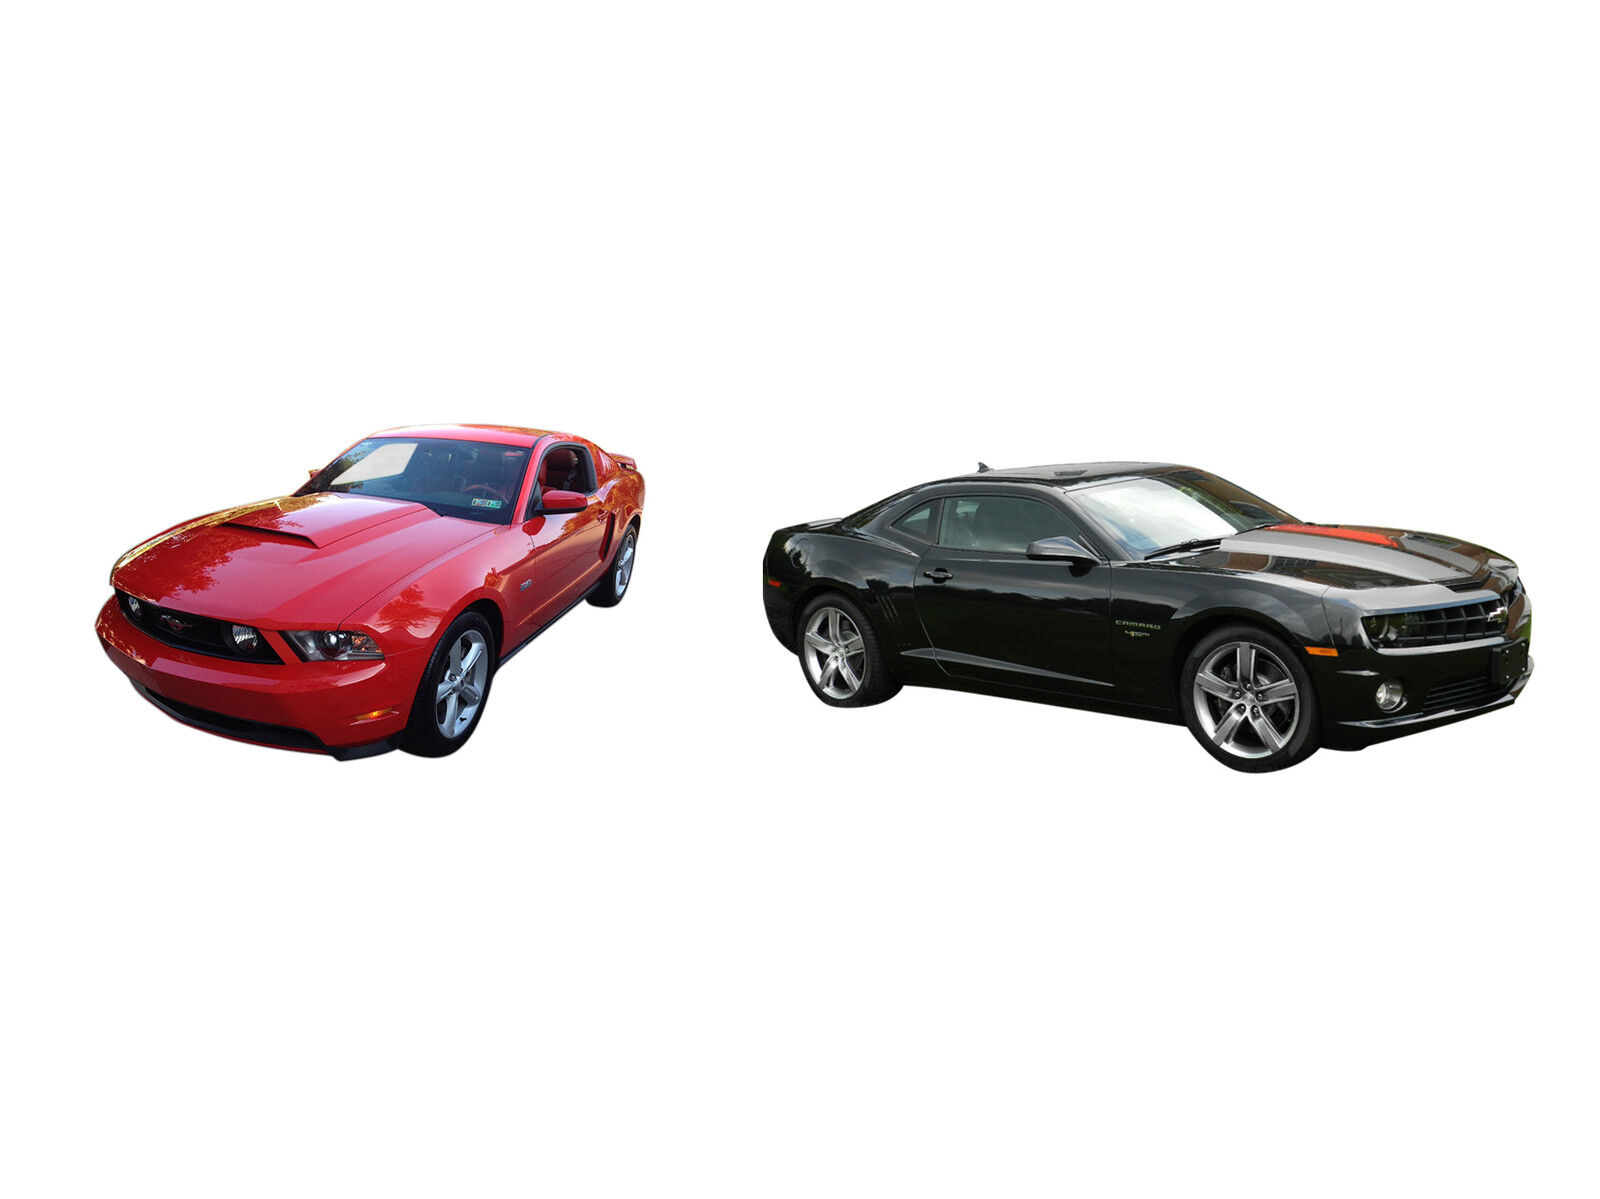 2012 mustang gt vs 2012 chevrolet camaro ss ebay. Black Bedroom Furniture Sets. Home Design Ideas